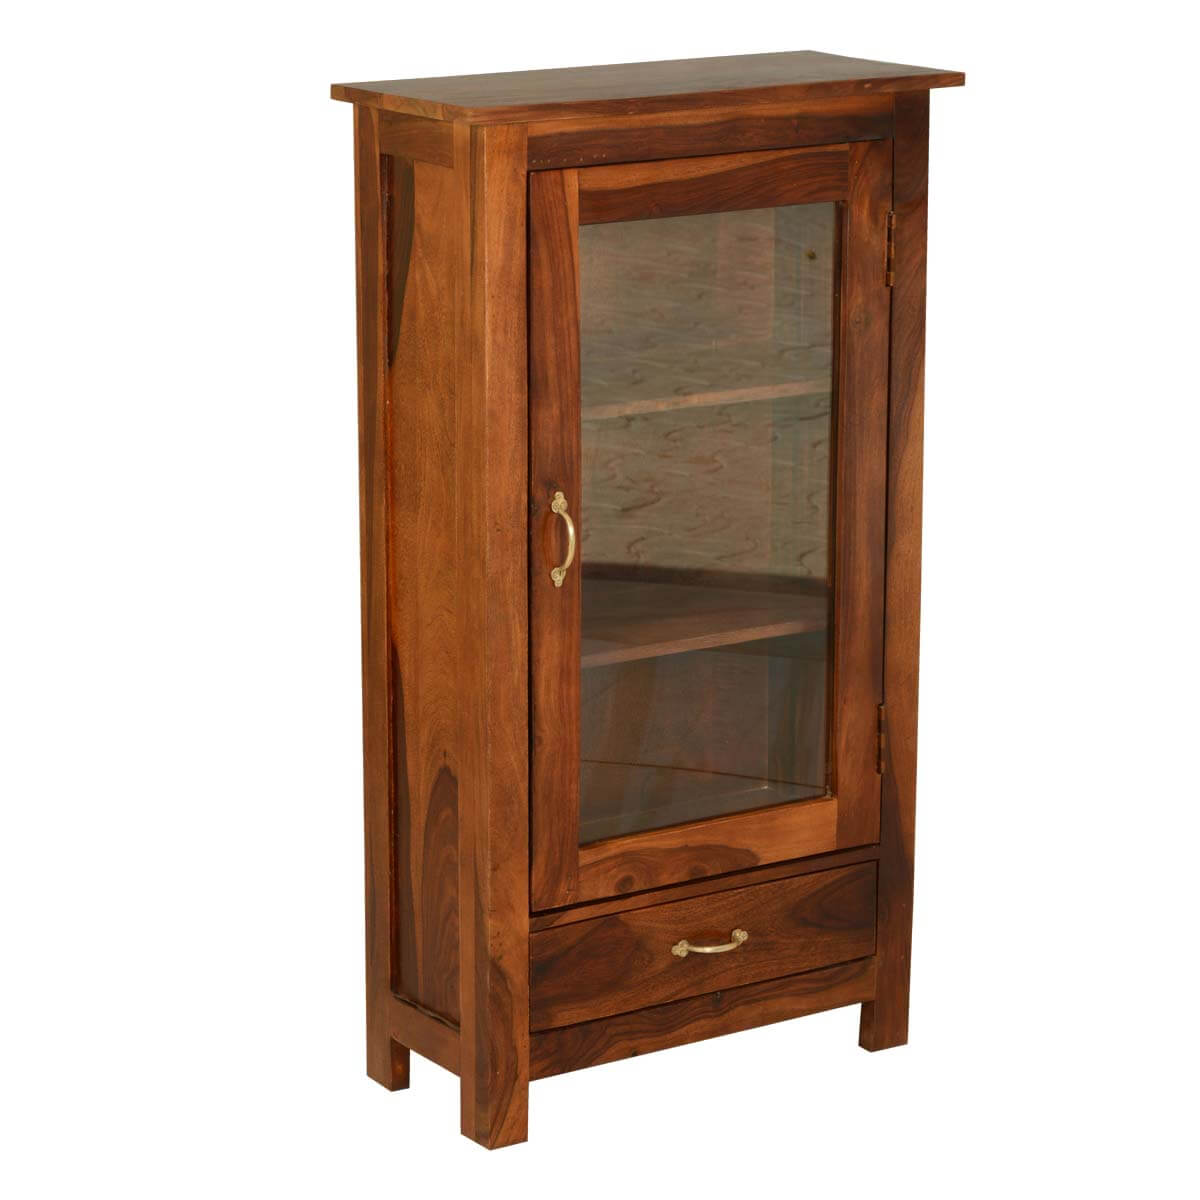 Farm House Solid Wood Glass Door Curio Cabinet w Drawer : 59072 from www.sierralivingconcepts.com size 1200 x 1200 jpeg 87kB